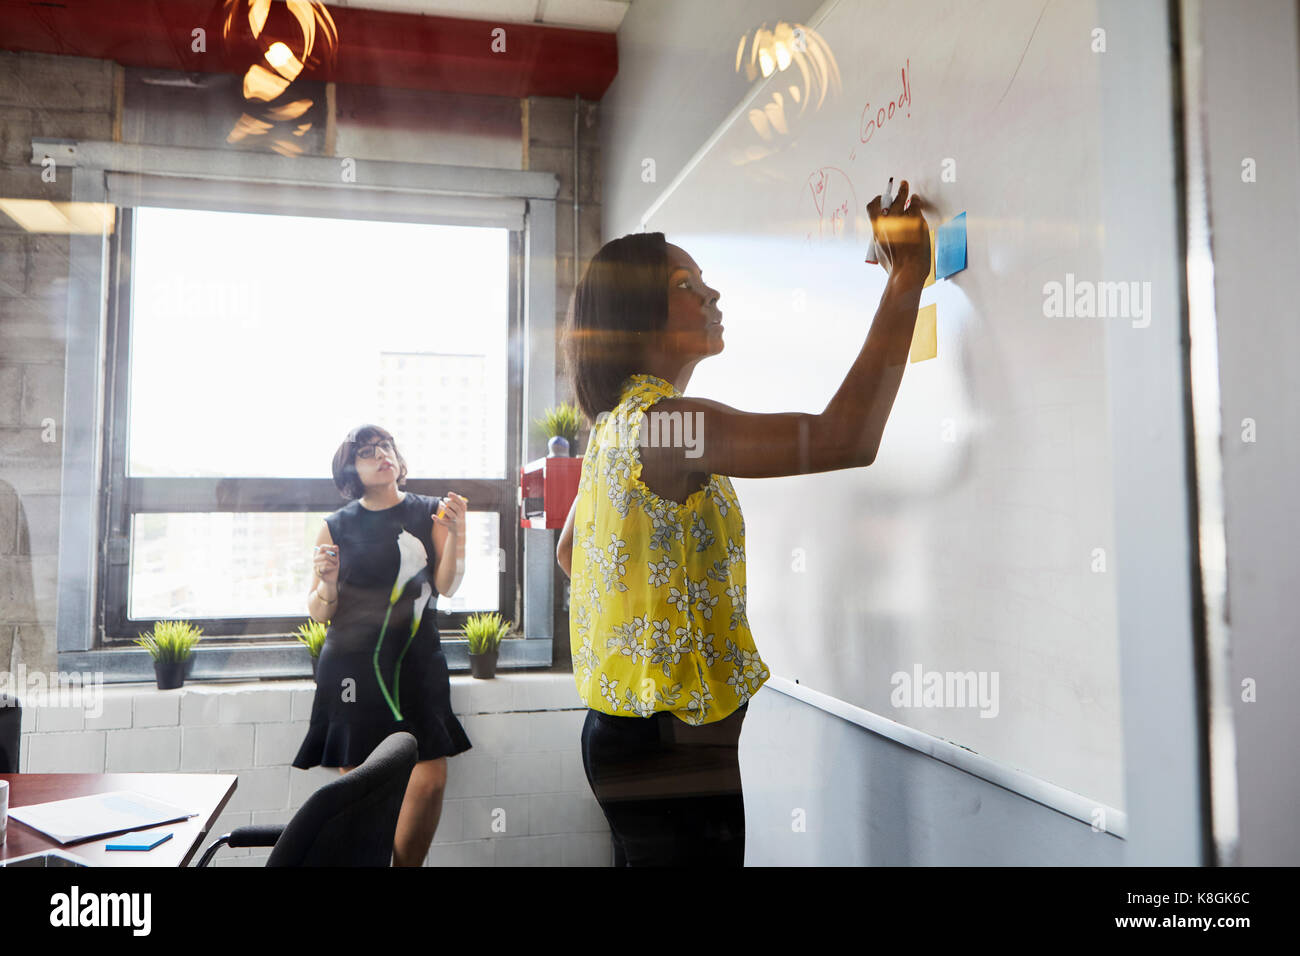 Two women in office, solving problem, using whiteboard, sticky notes stuck on whiteboard Stock Photo